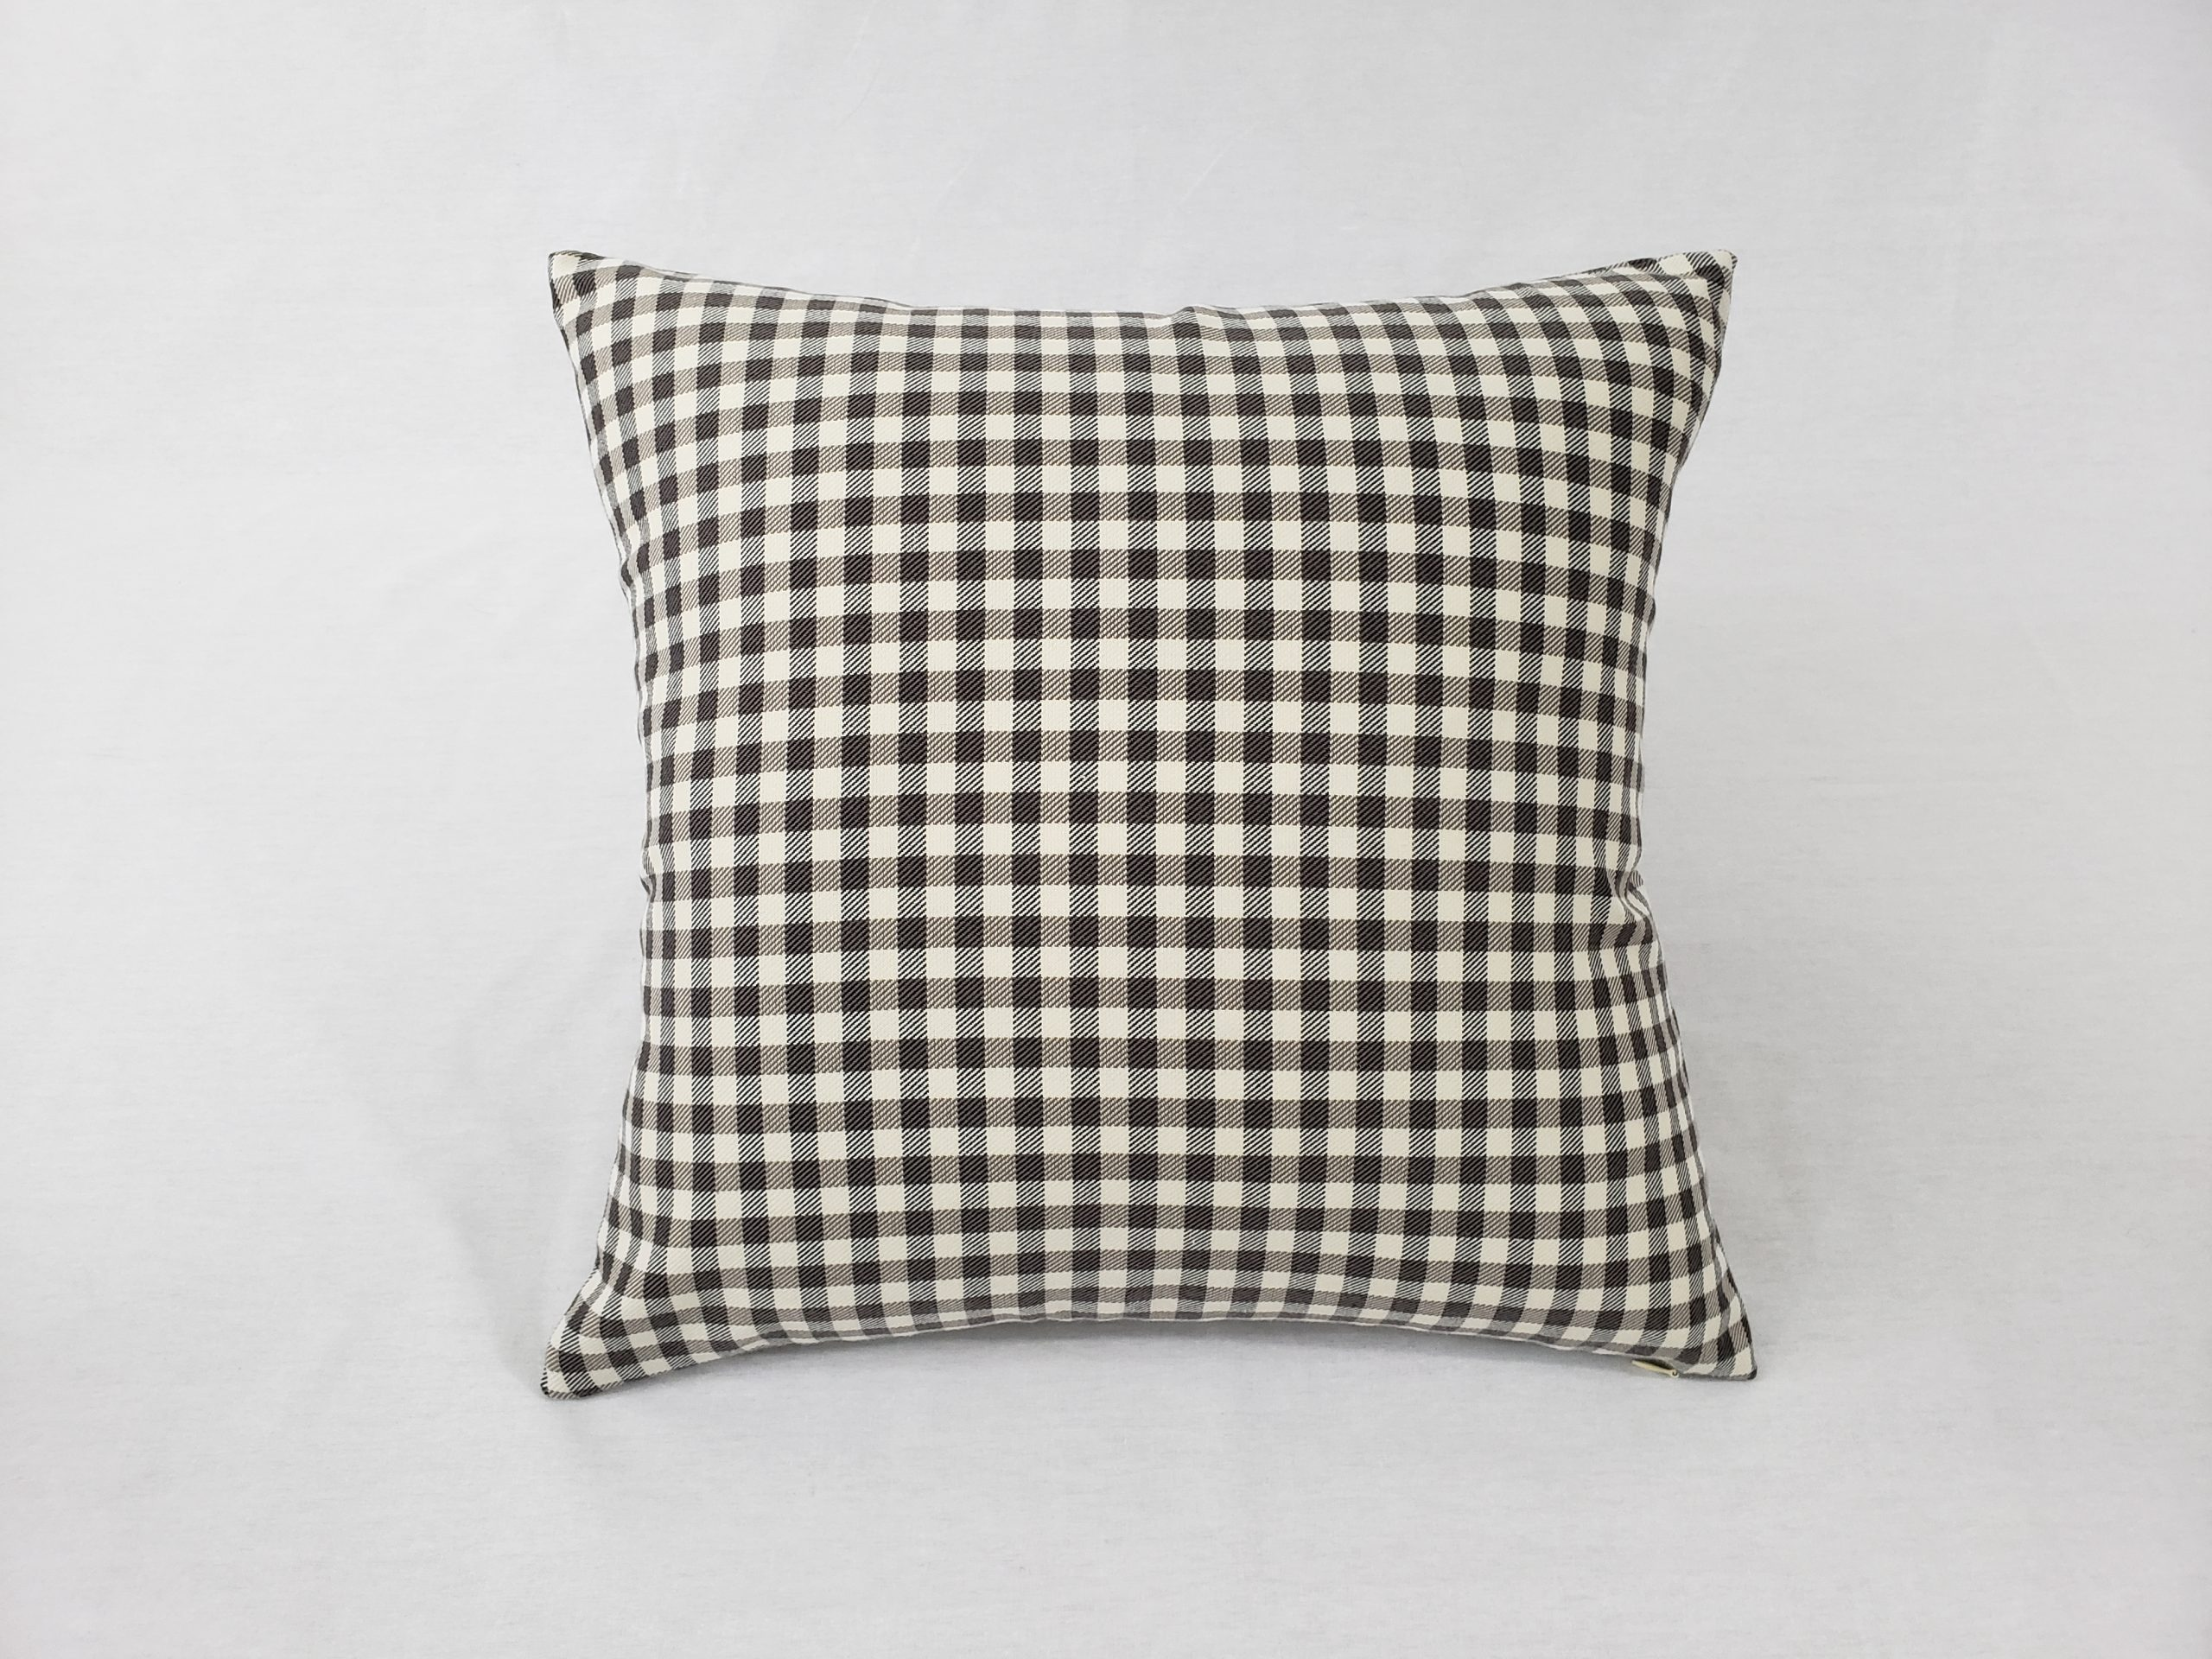 A grey and white check cushion